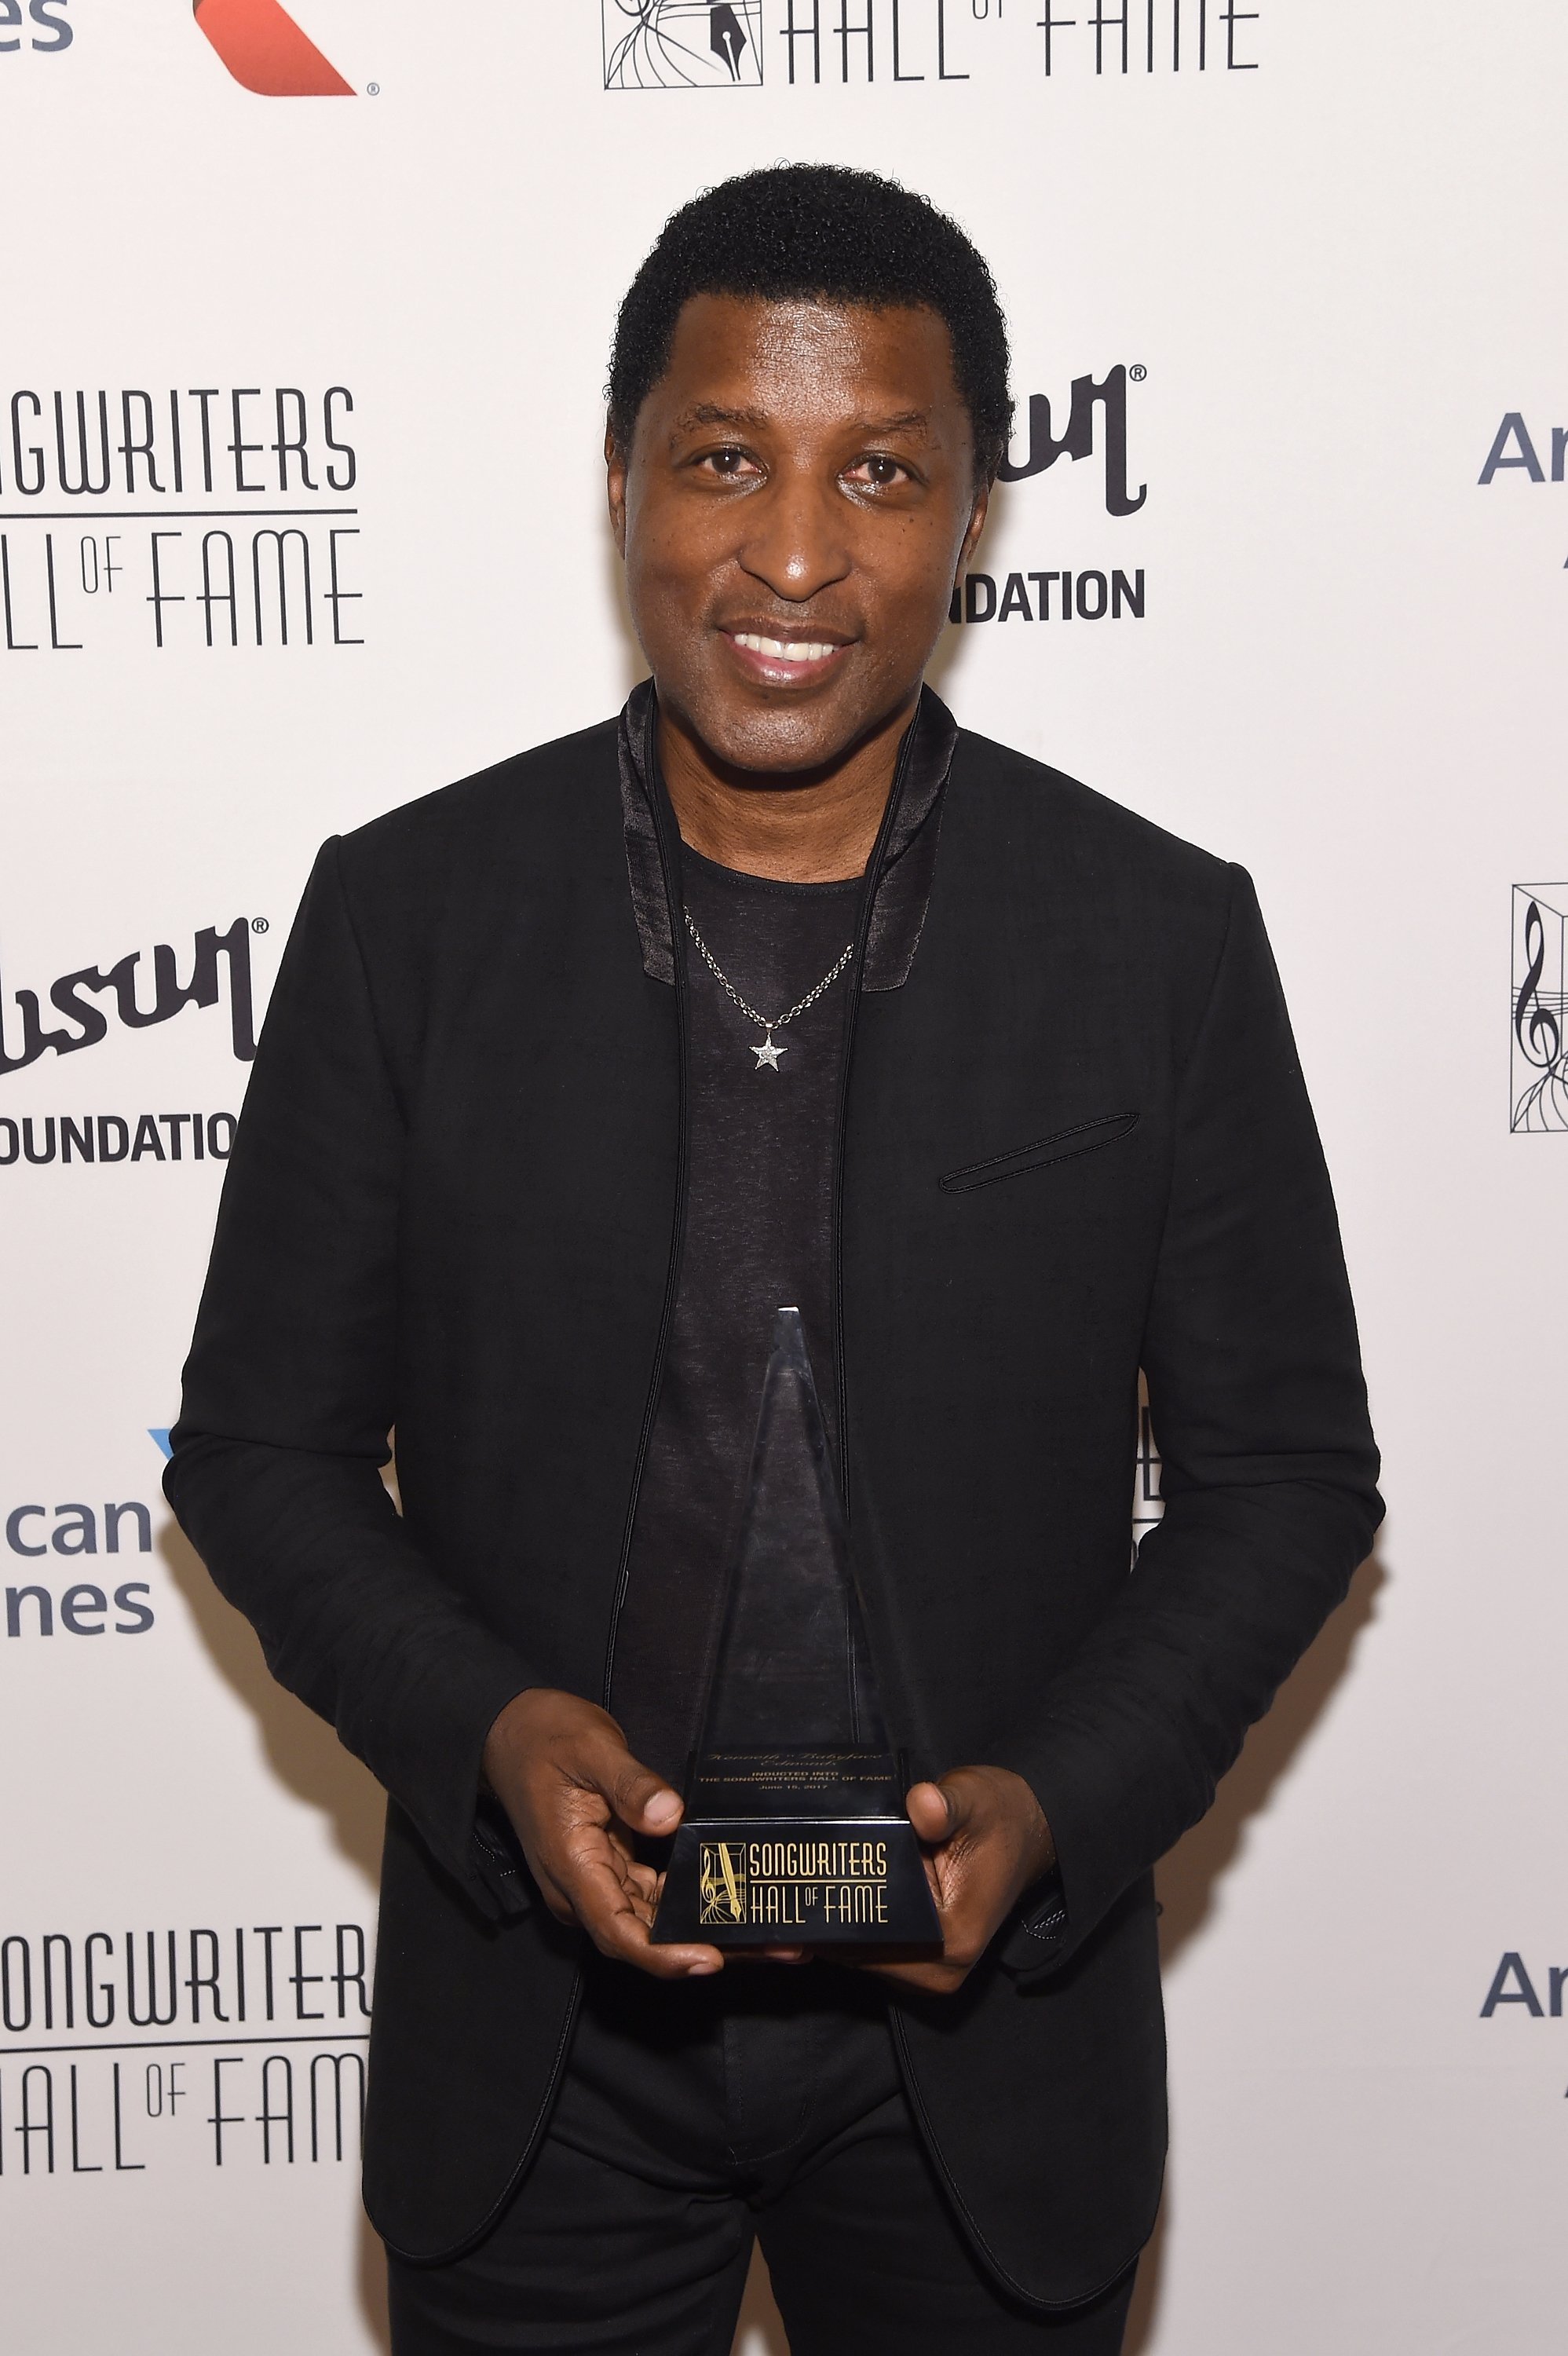 Babyface at the Songwriters Hall of Fame 48th Annual Induction Awards in June 2017. | Photo: Getty Images